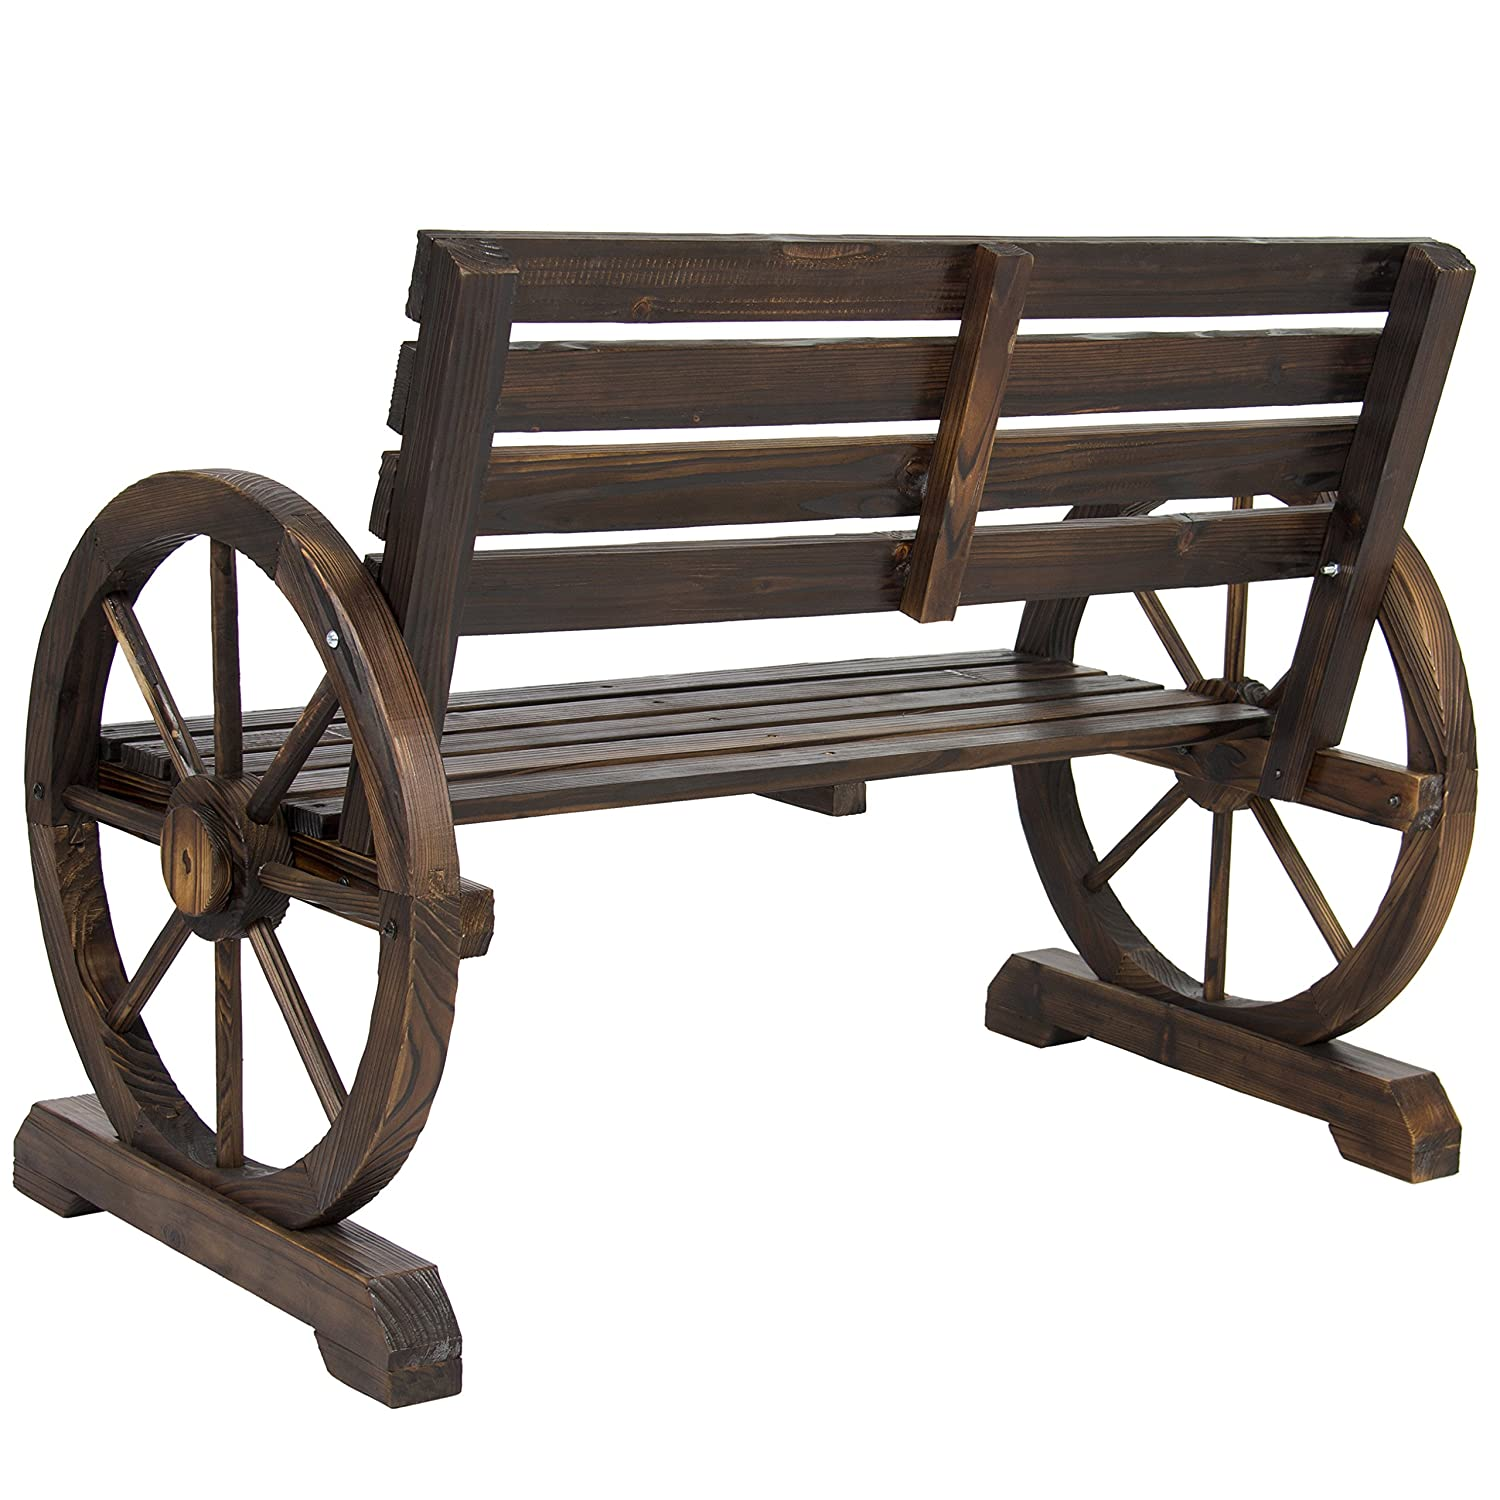 Exceptional Amazon.com : Best Choice Products Patio Garden Wooden Wagon Wheel Bench  Rustic Wood Design Outdoor Furniture : Garden U0026 Outdoor